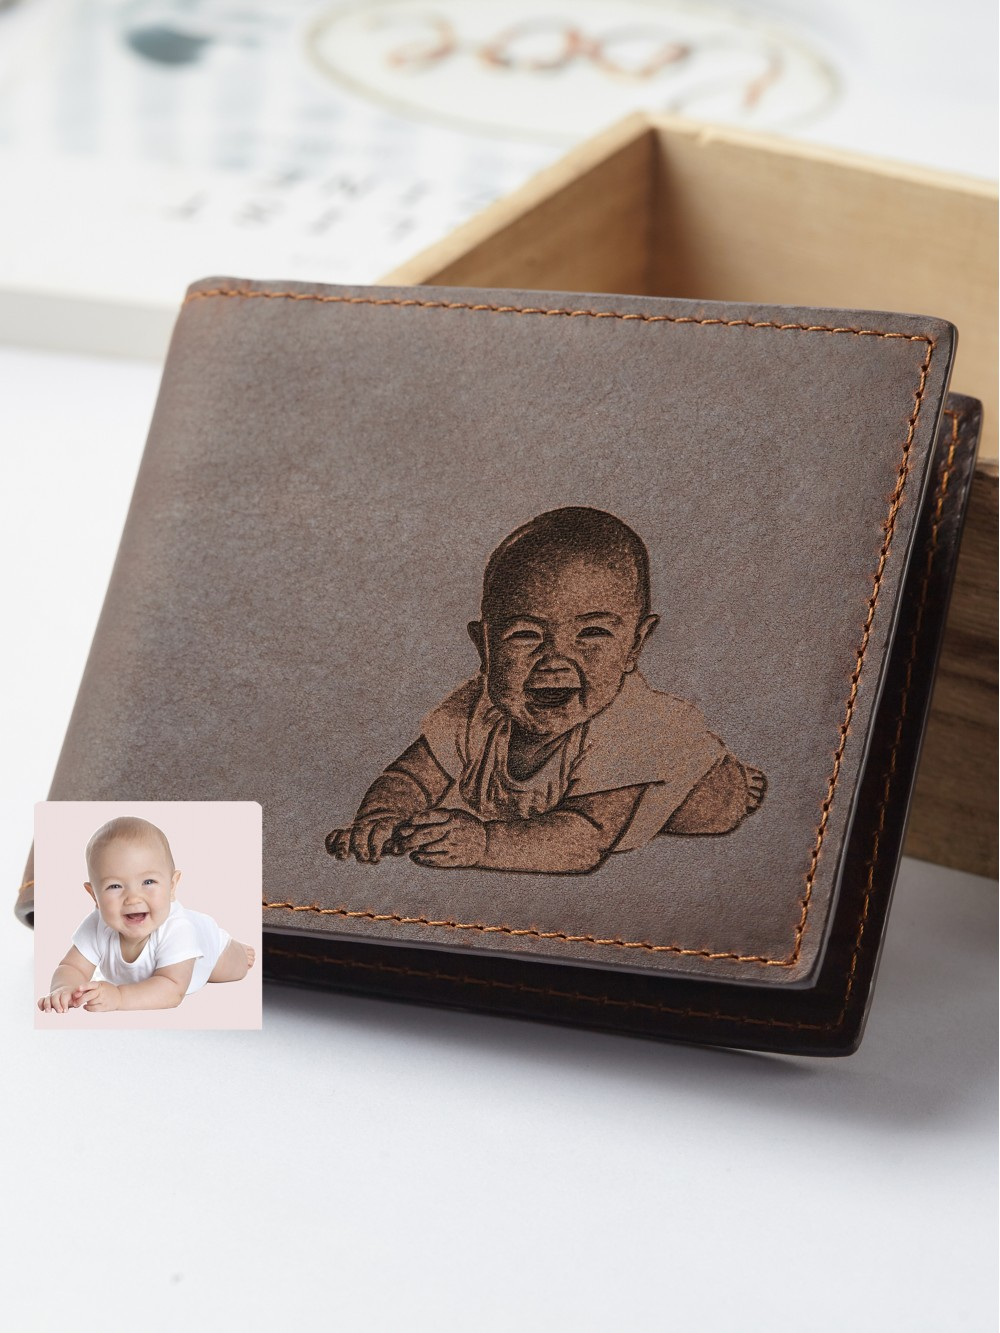 Baby Photo Engraved Wallet